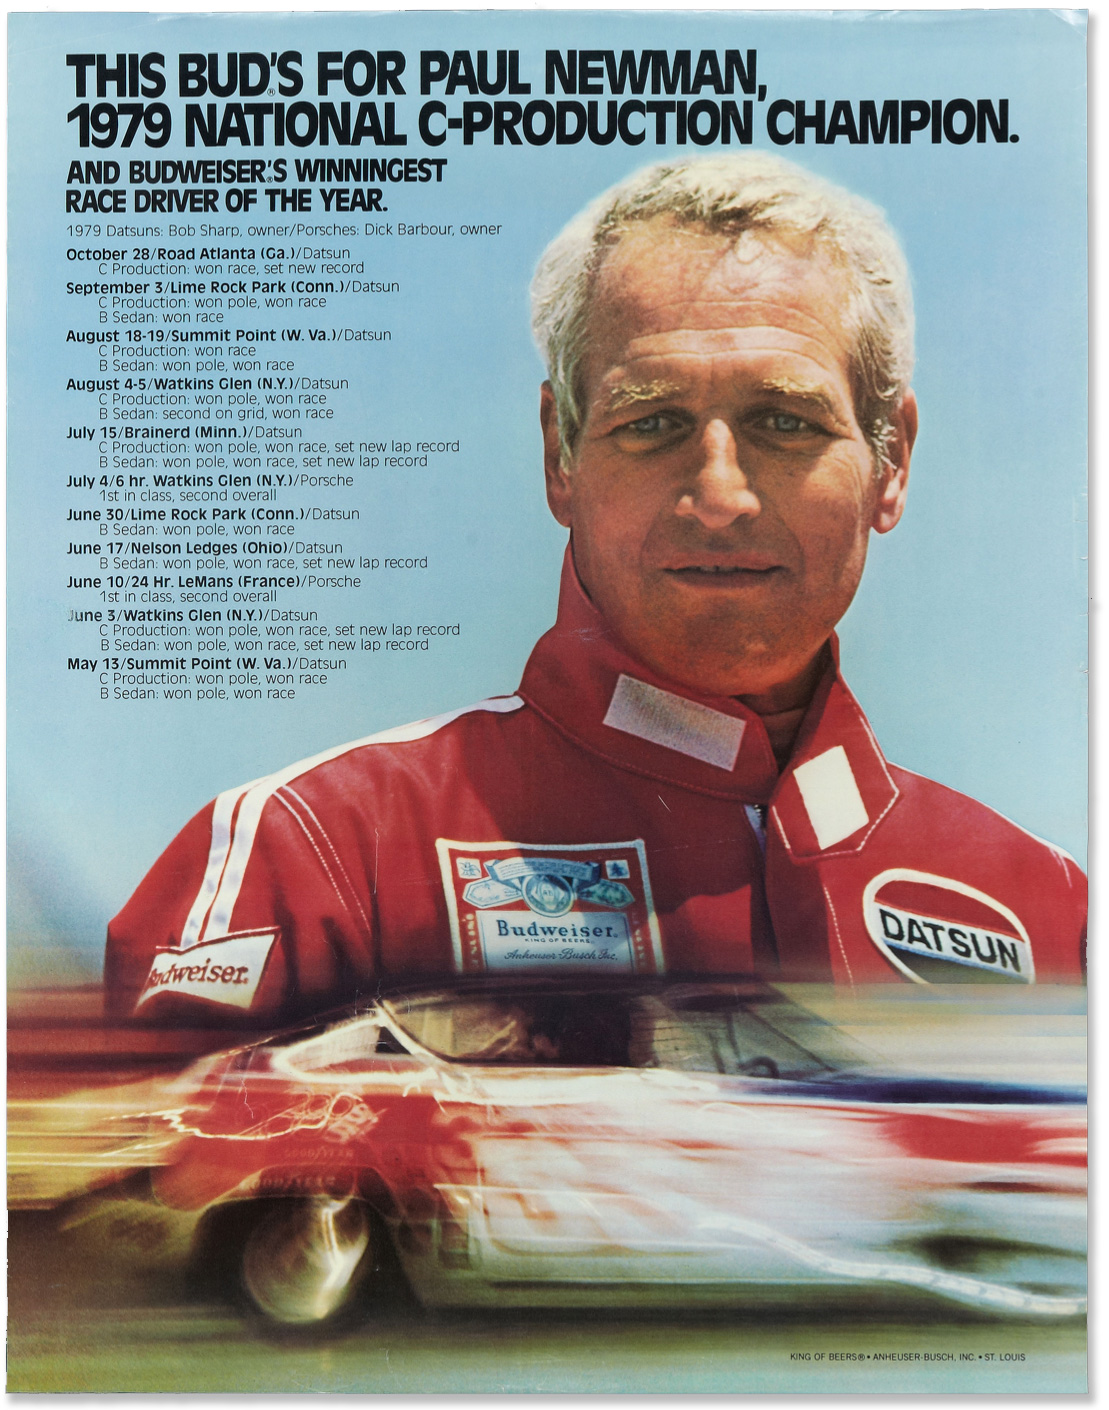 Paul Newman Budweiser Racing Poster on jaguar e type series i restoration part 4 2